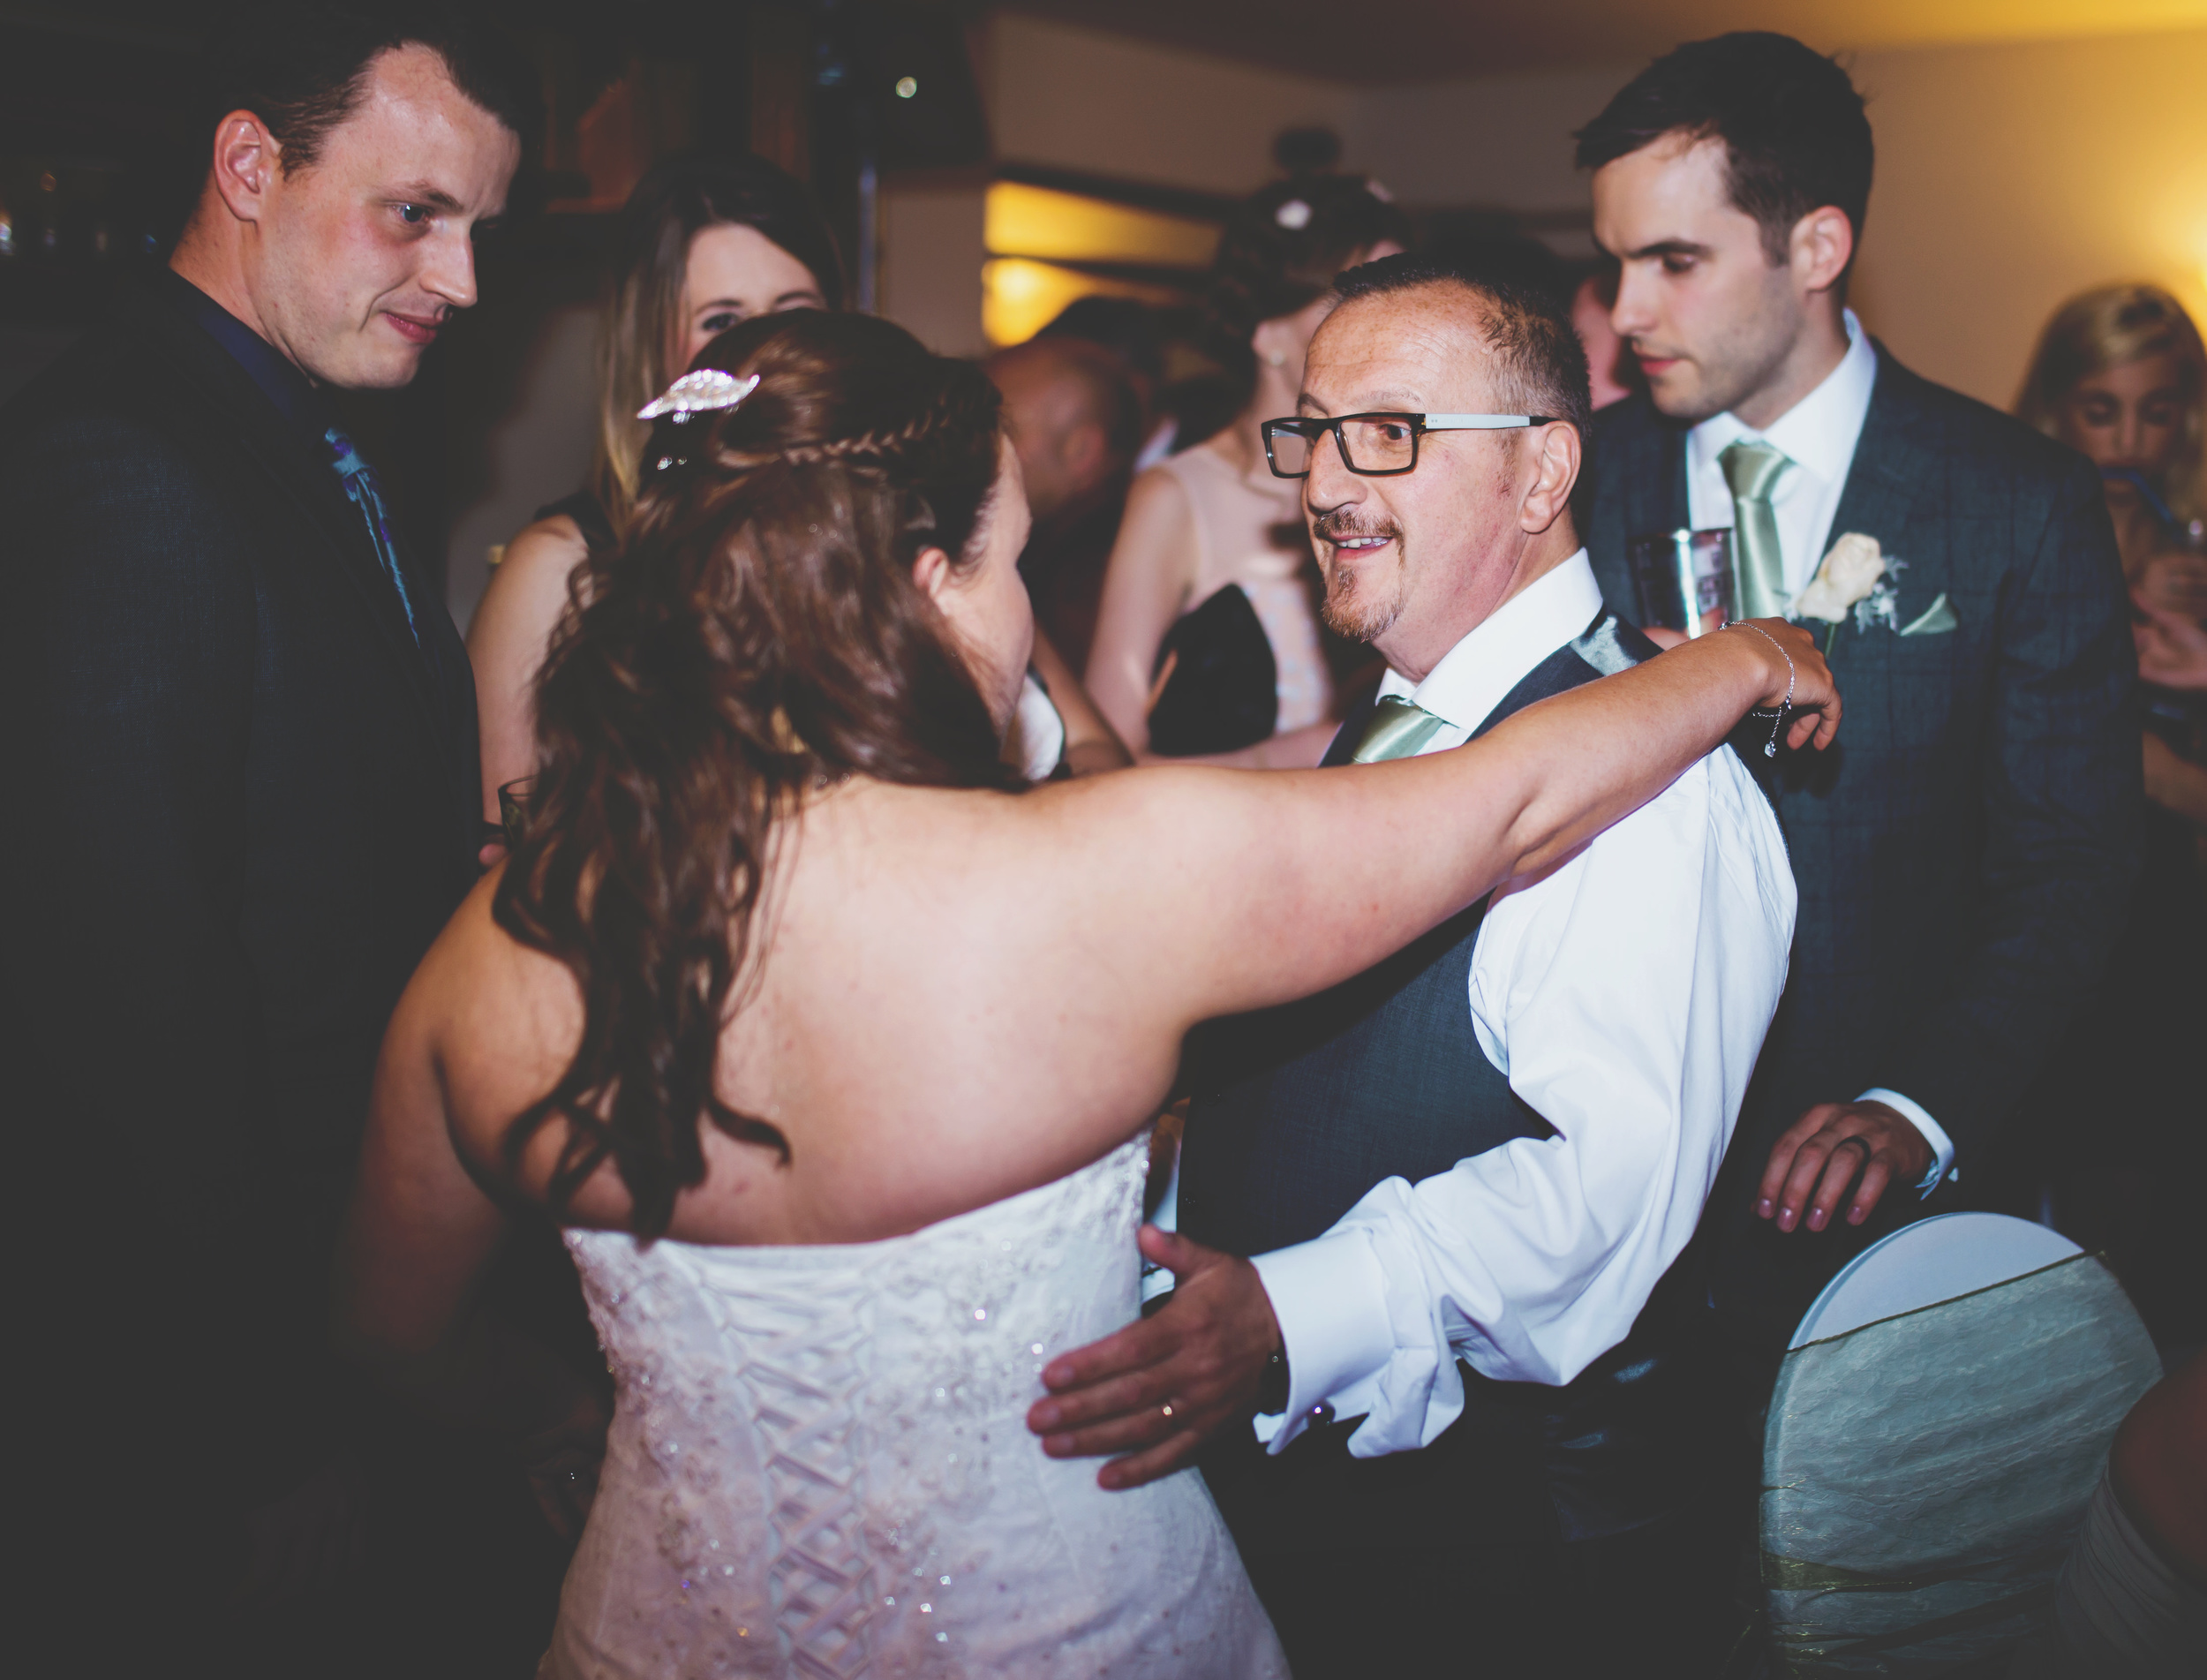 dance with dad - Beeston Manor wedding